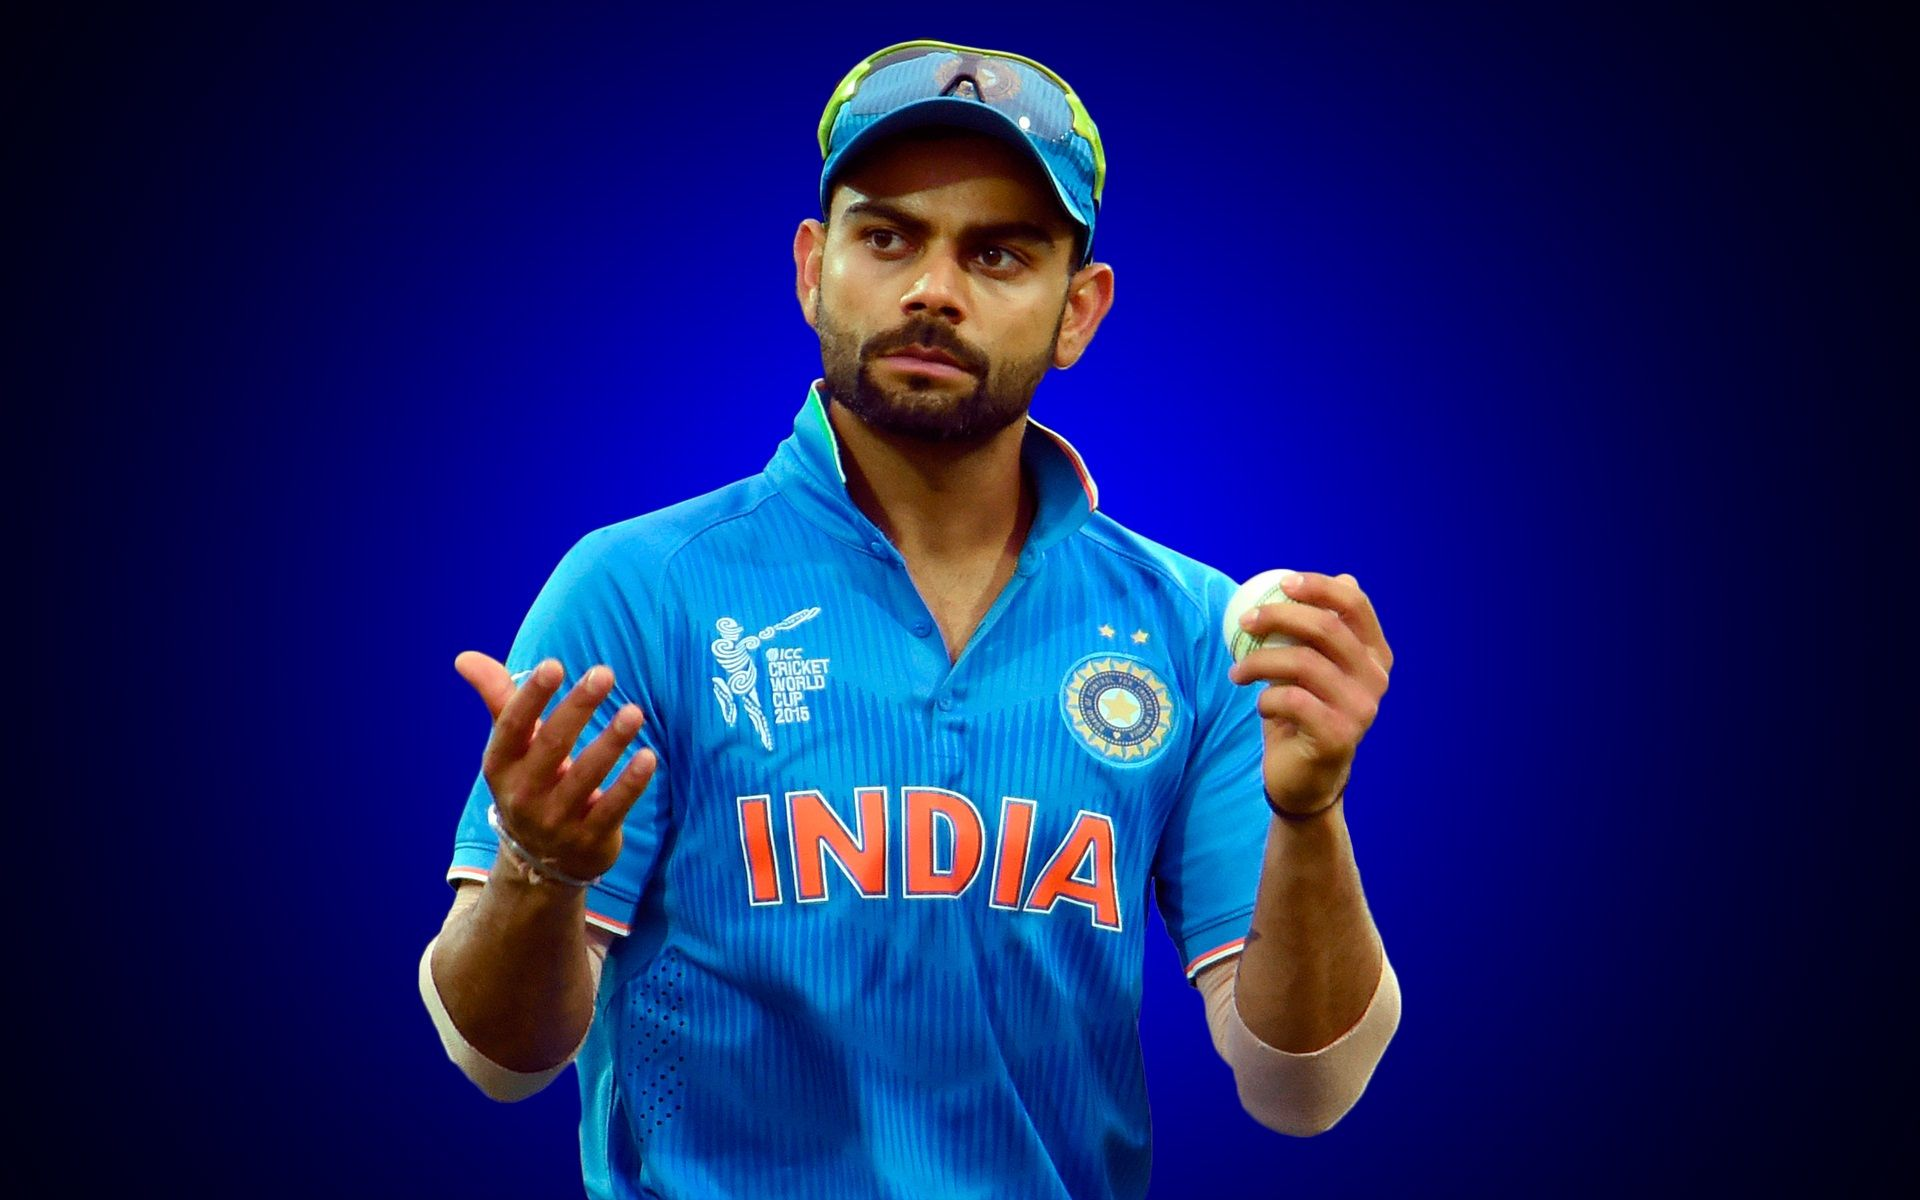 Wallpaper download cricket - Virat Kohli Indian Cricketer Wallpapers Beautiful Hd Wallpaper